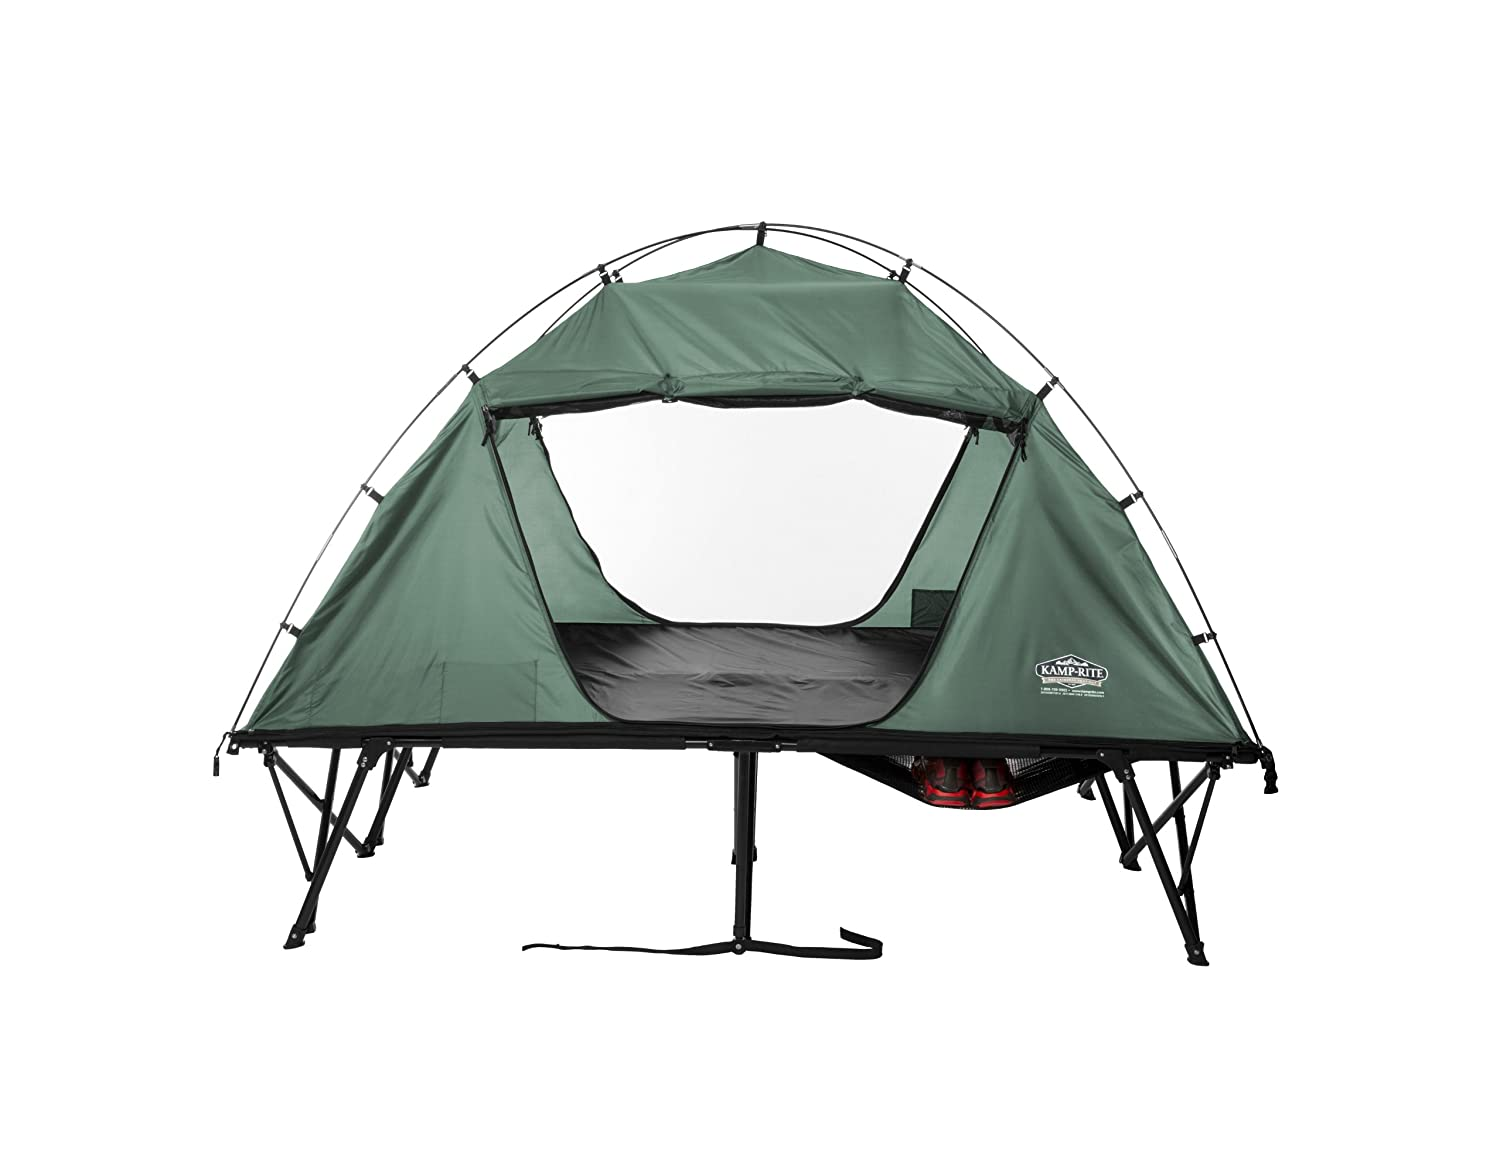 K& Rite Compact Tent Cot Double  sc 1 st  Amazon.com & Amazon.com : Elevated Off-Ground Tent Sleeping Shelter- Perfect ...